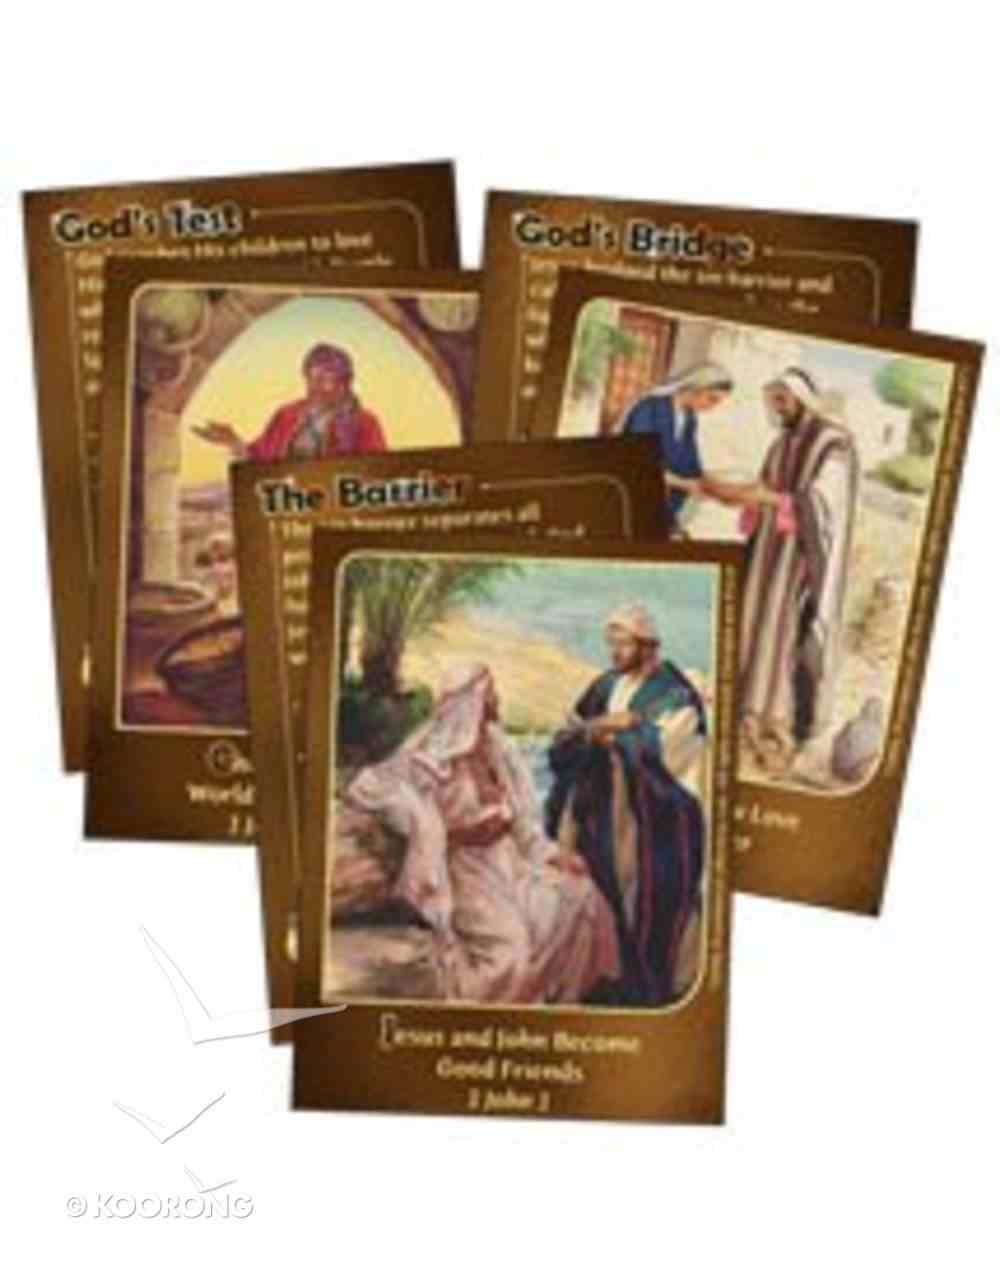 Dlc D2: Treasuring the Bible Bible Cards Ages 7-9 (The Bible Guides My Life) (Discipleland Level 2, Ages 7-9, Qtrs Abcd Series) Pack